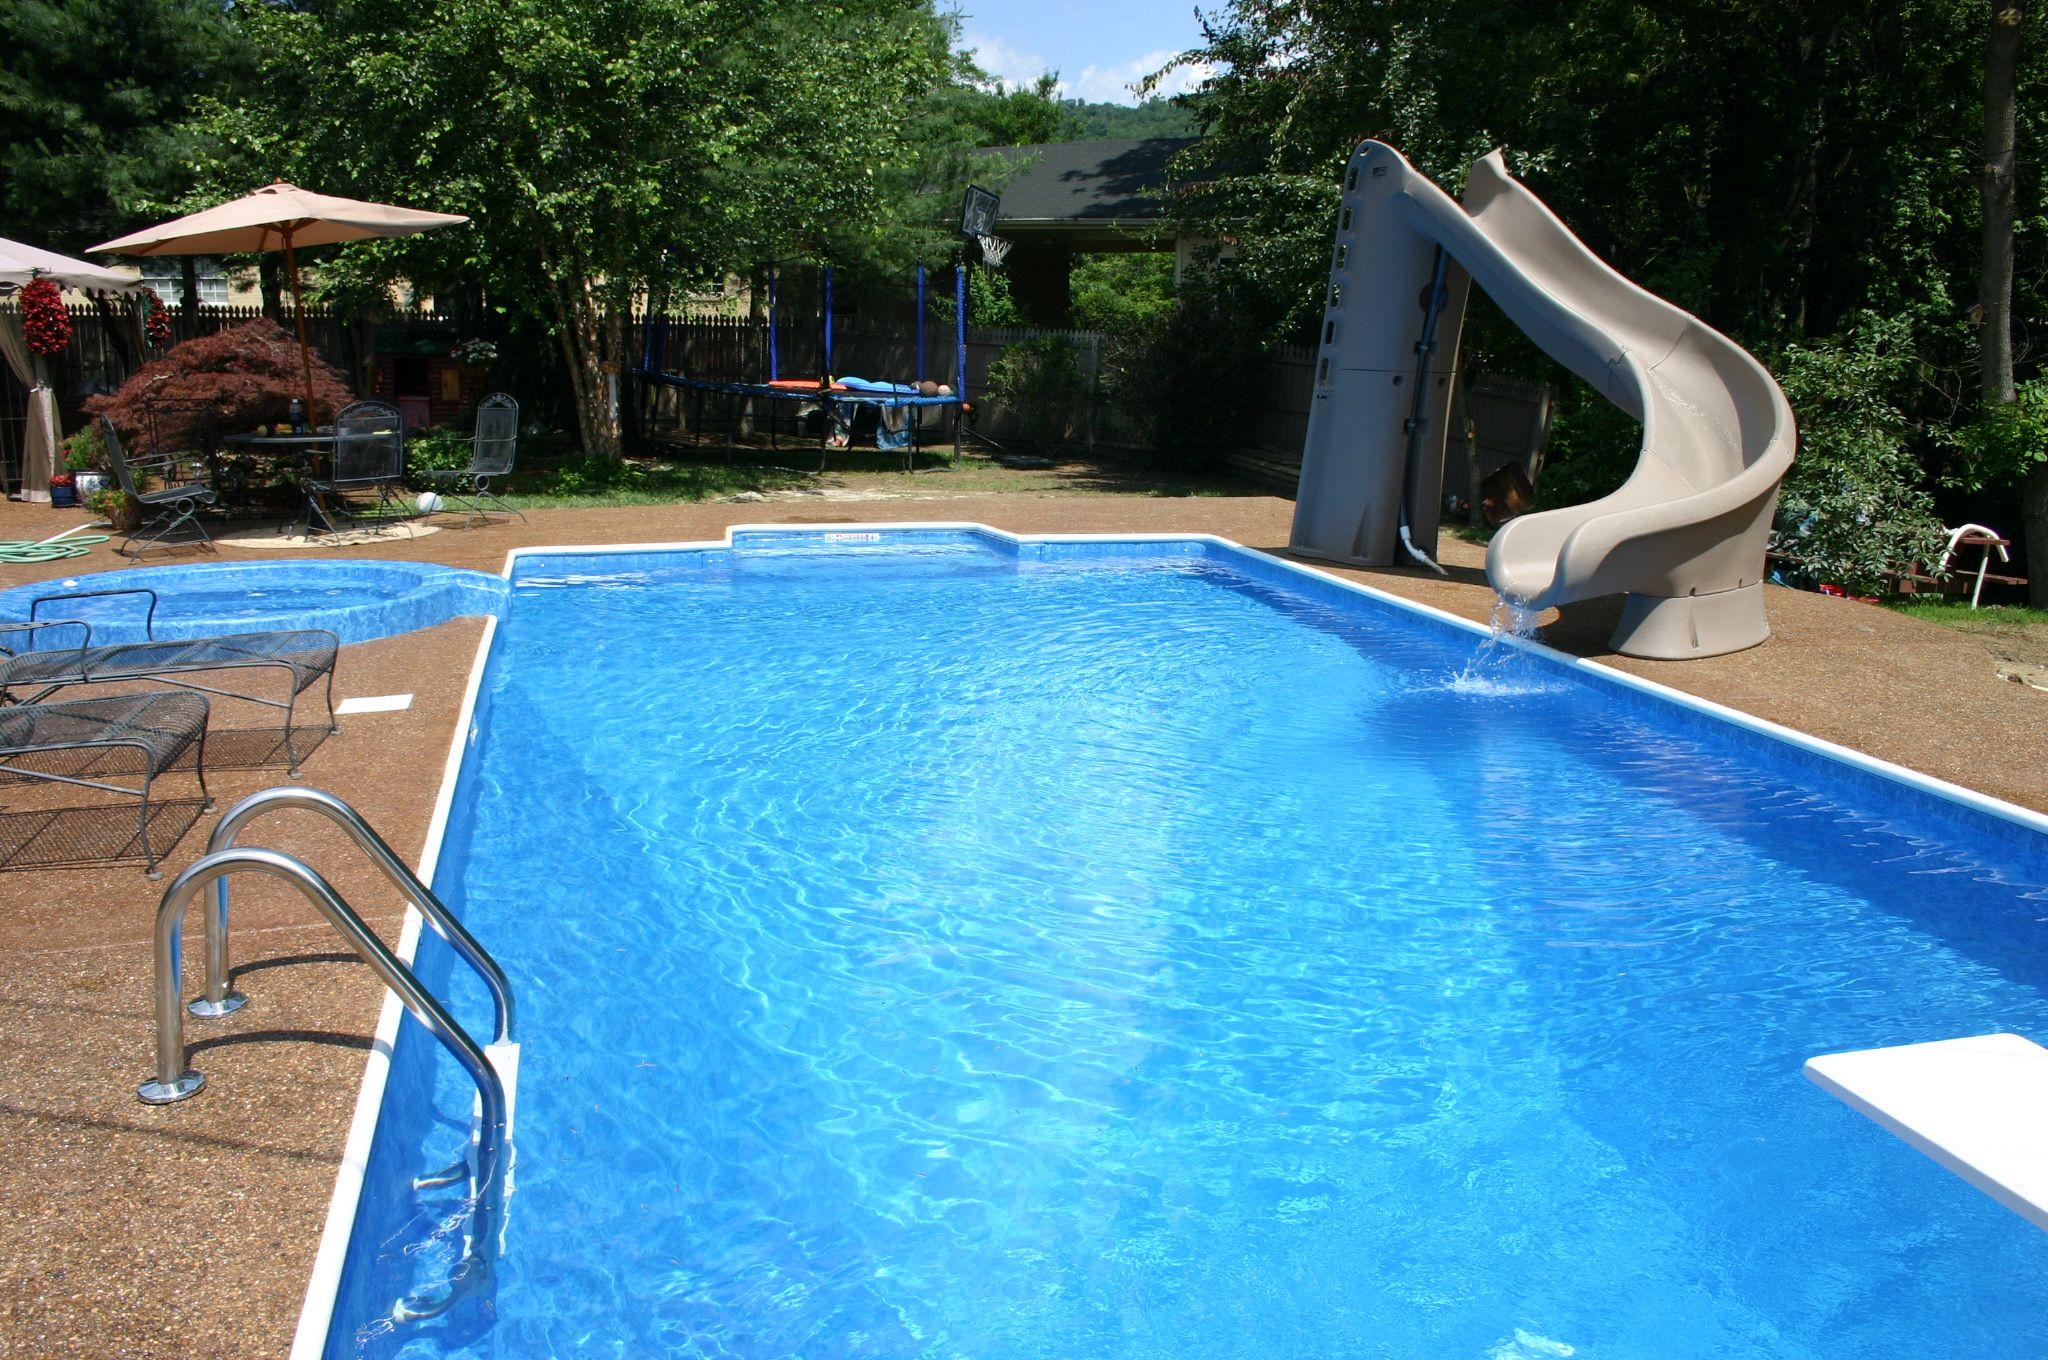 Pool Complete With Slide And Diving Board Pools Backyard Inground Backyard Pool Diving Board